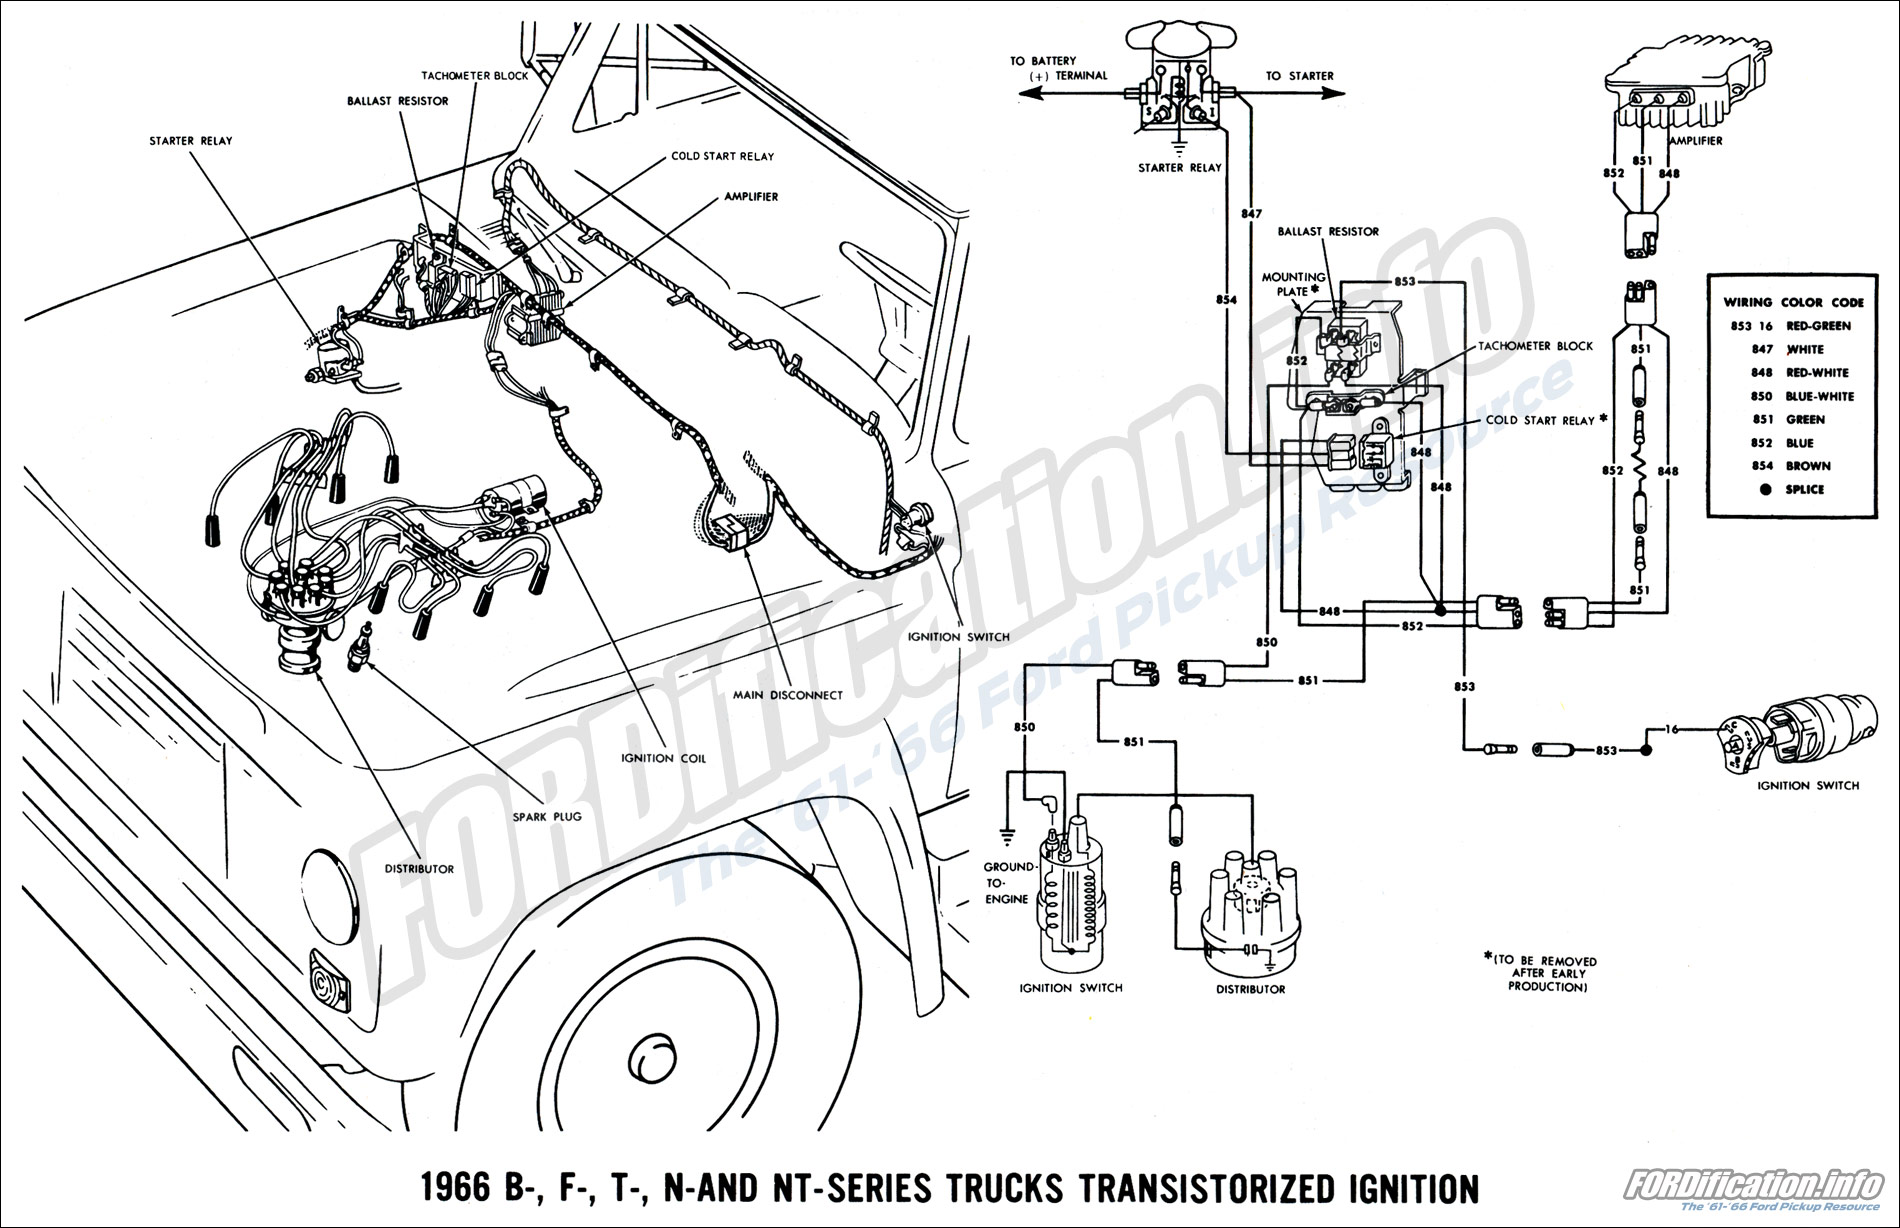 Color Wiring Diagram 1961 Ford Galaxie Schematic F100 List Of Circuit 1966 Simple Rh David Huggett Co Uk